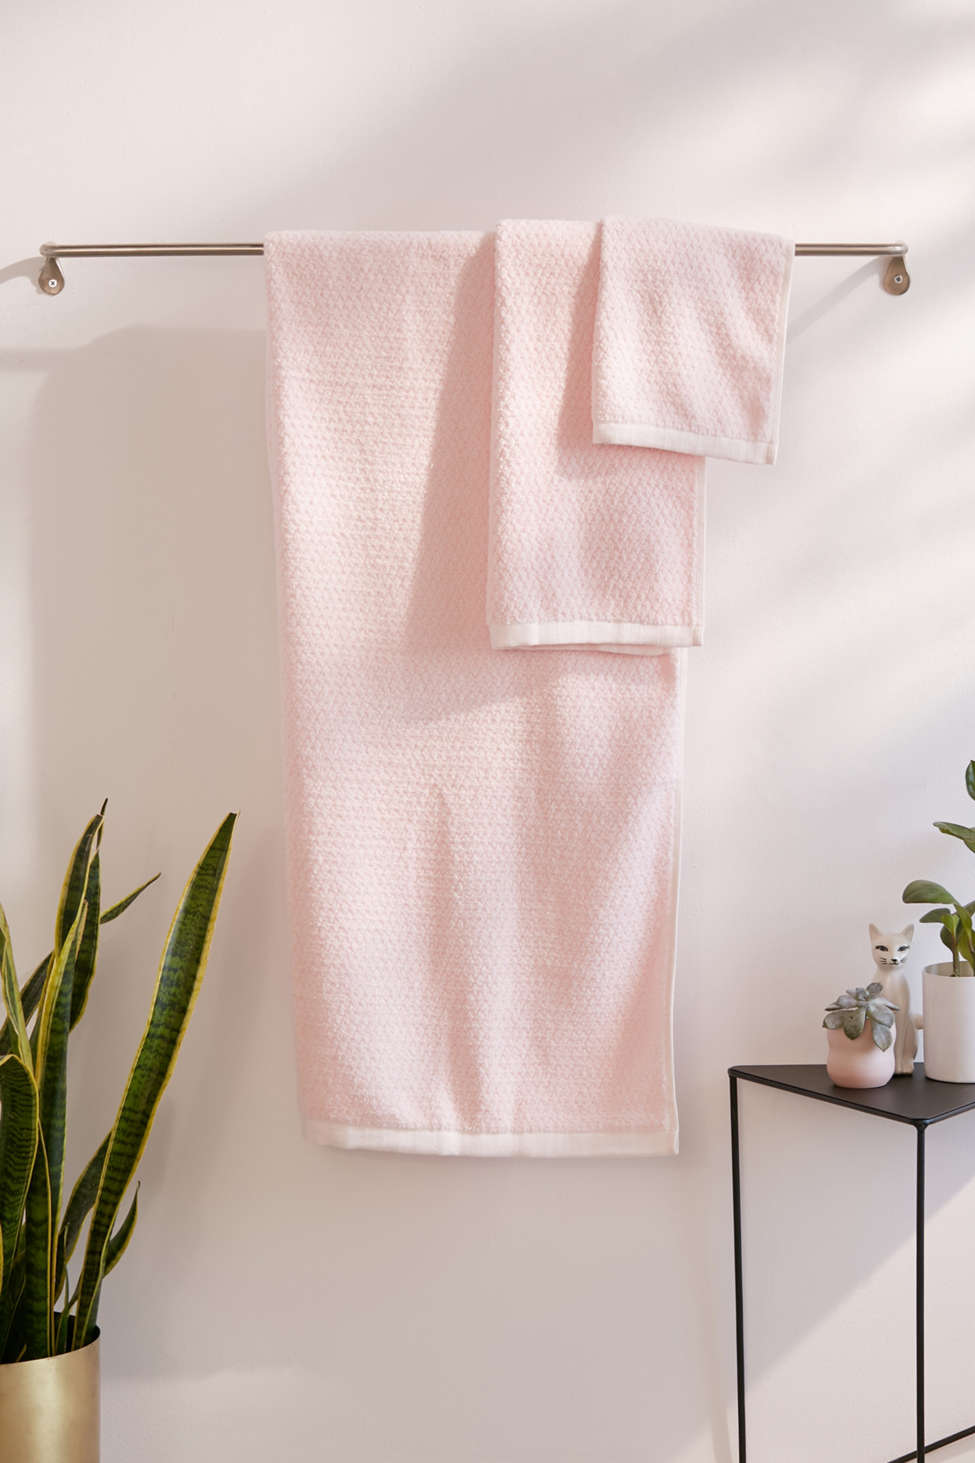 Slide View: 1: Everplush 6-Piece Diamond Jacquard Bath Towel Set